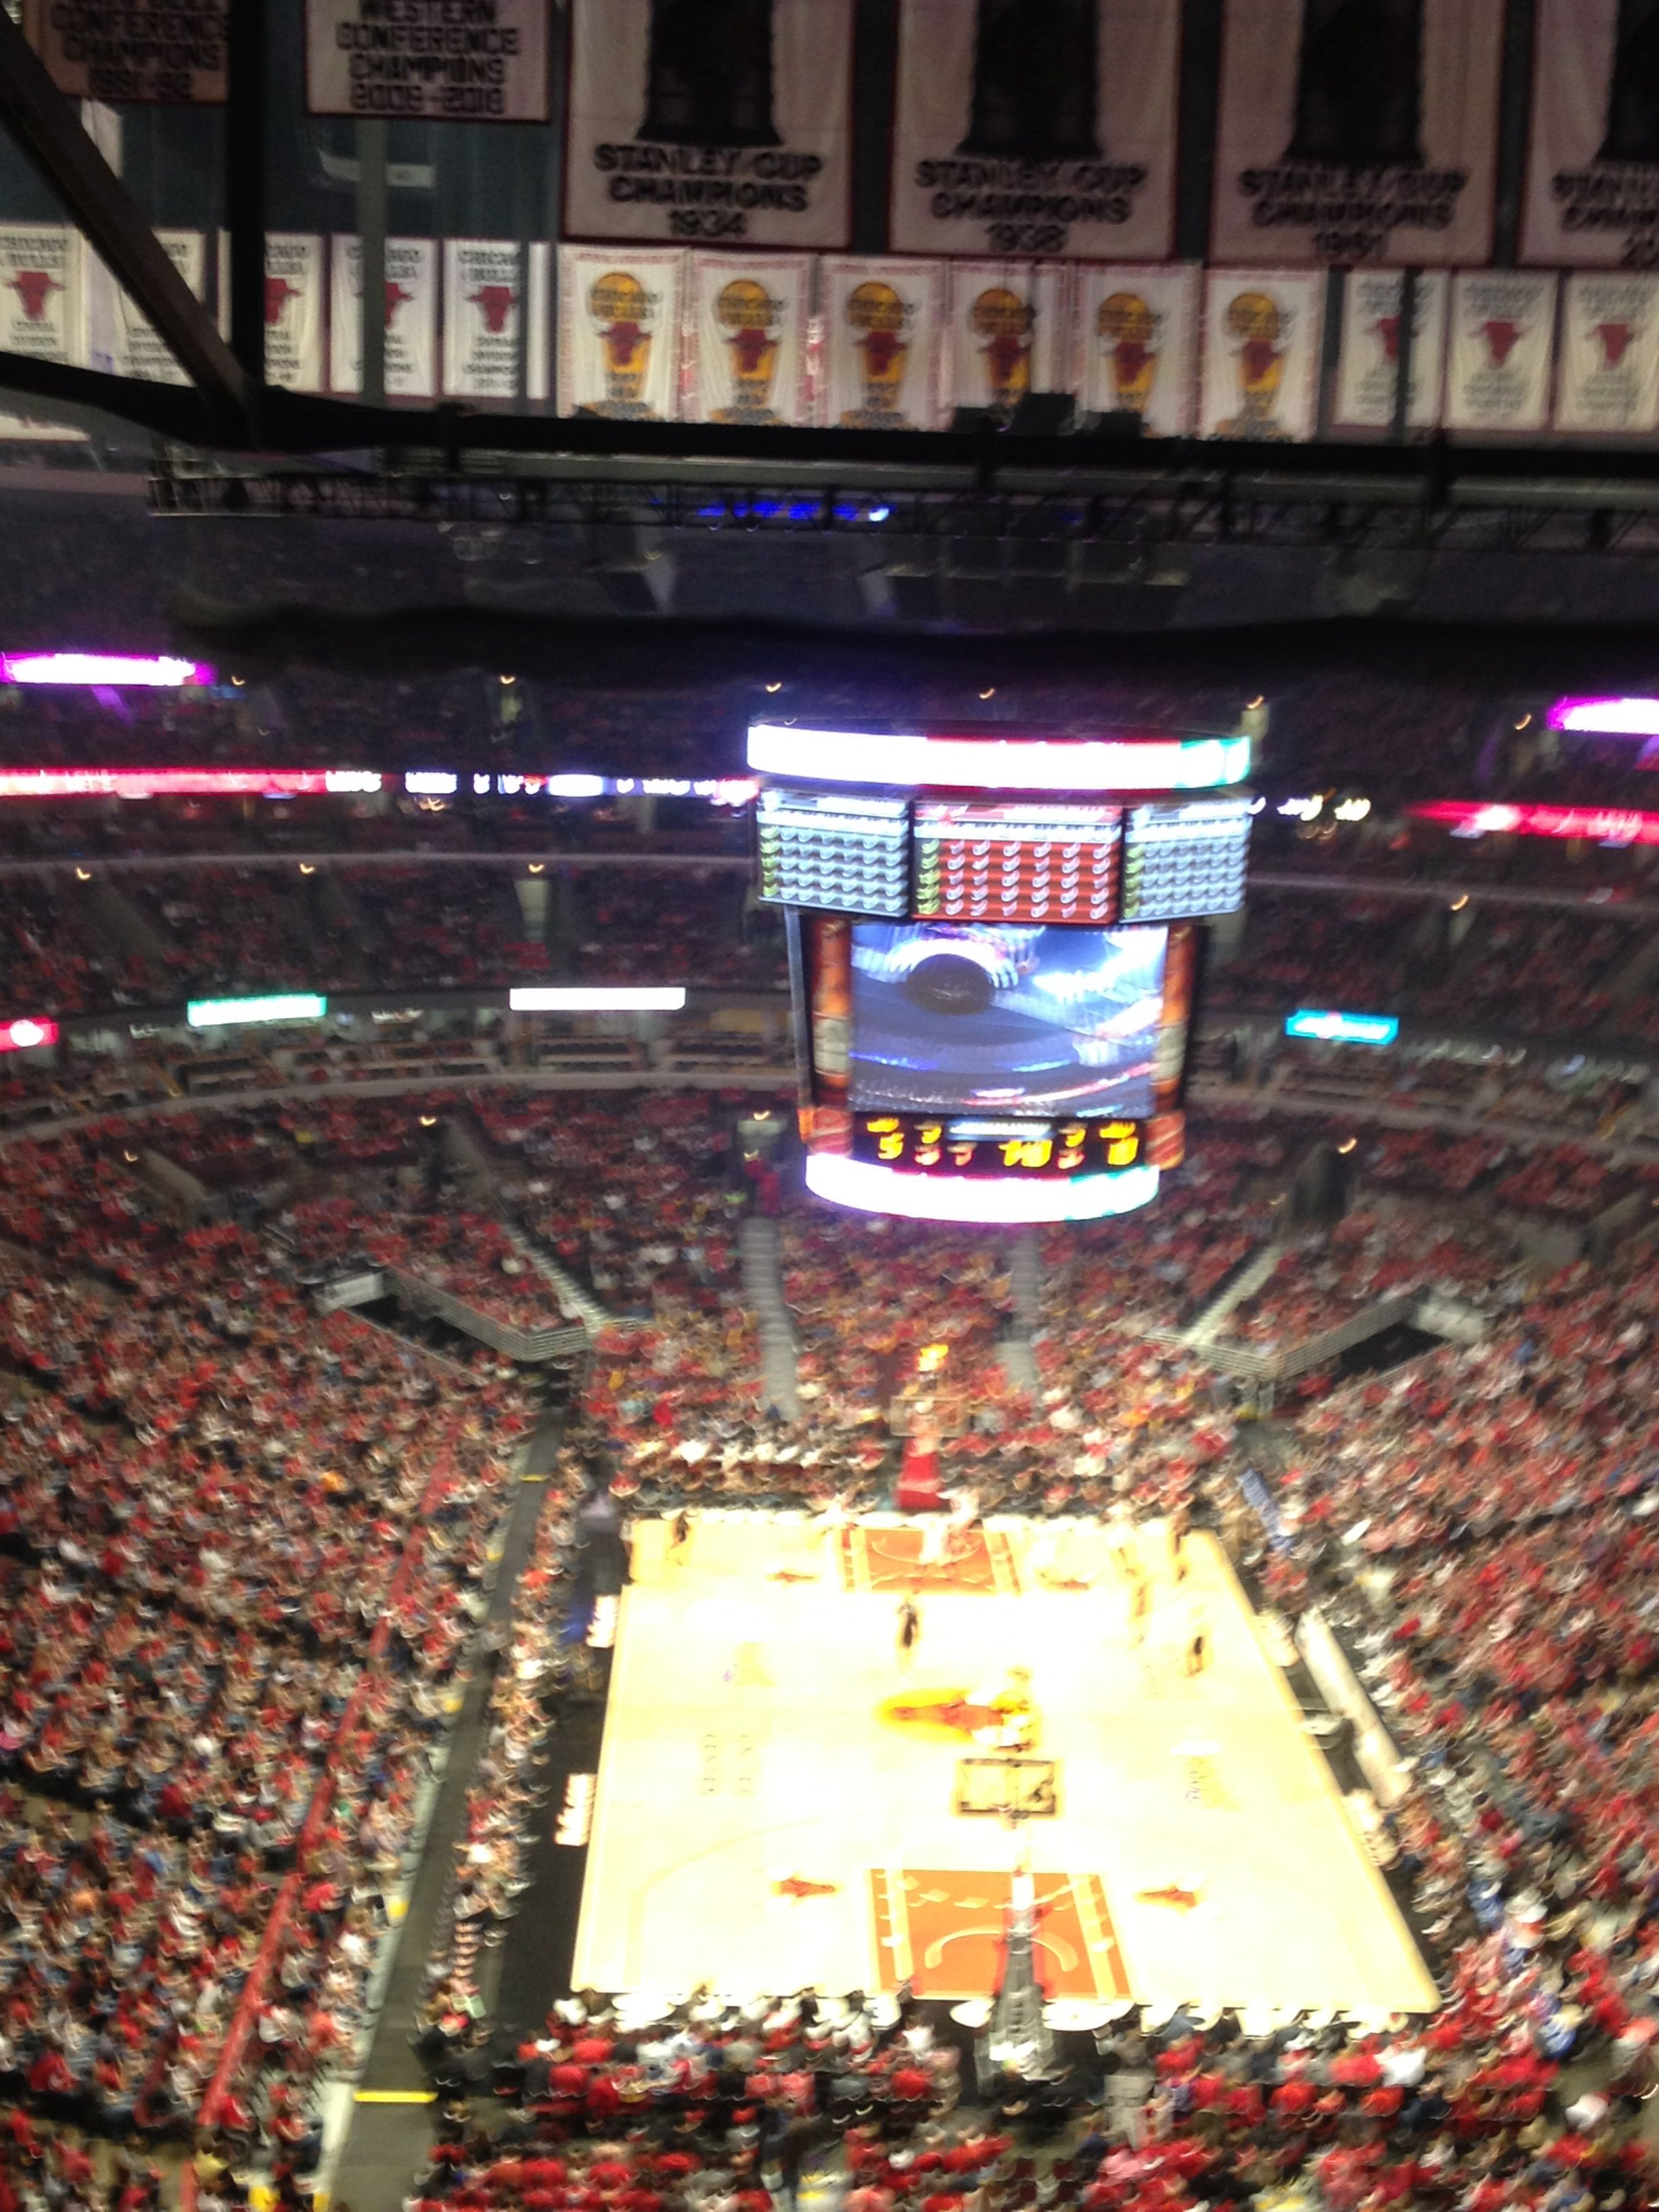 Attend a Chicago Bulls playoff game ✔️